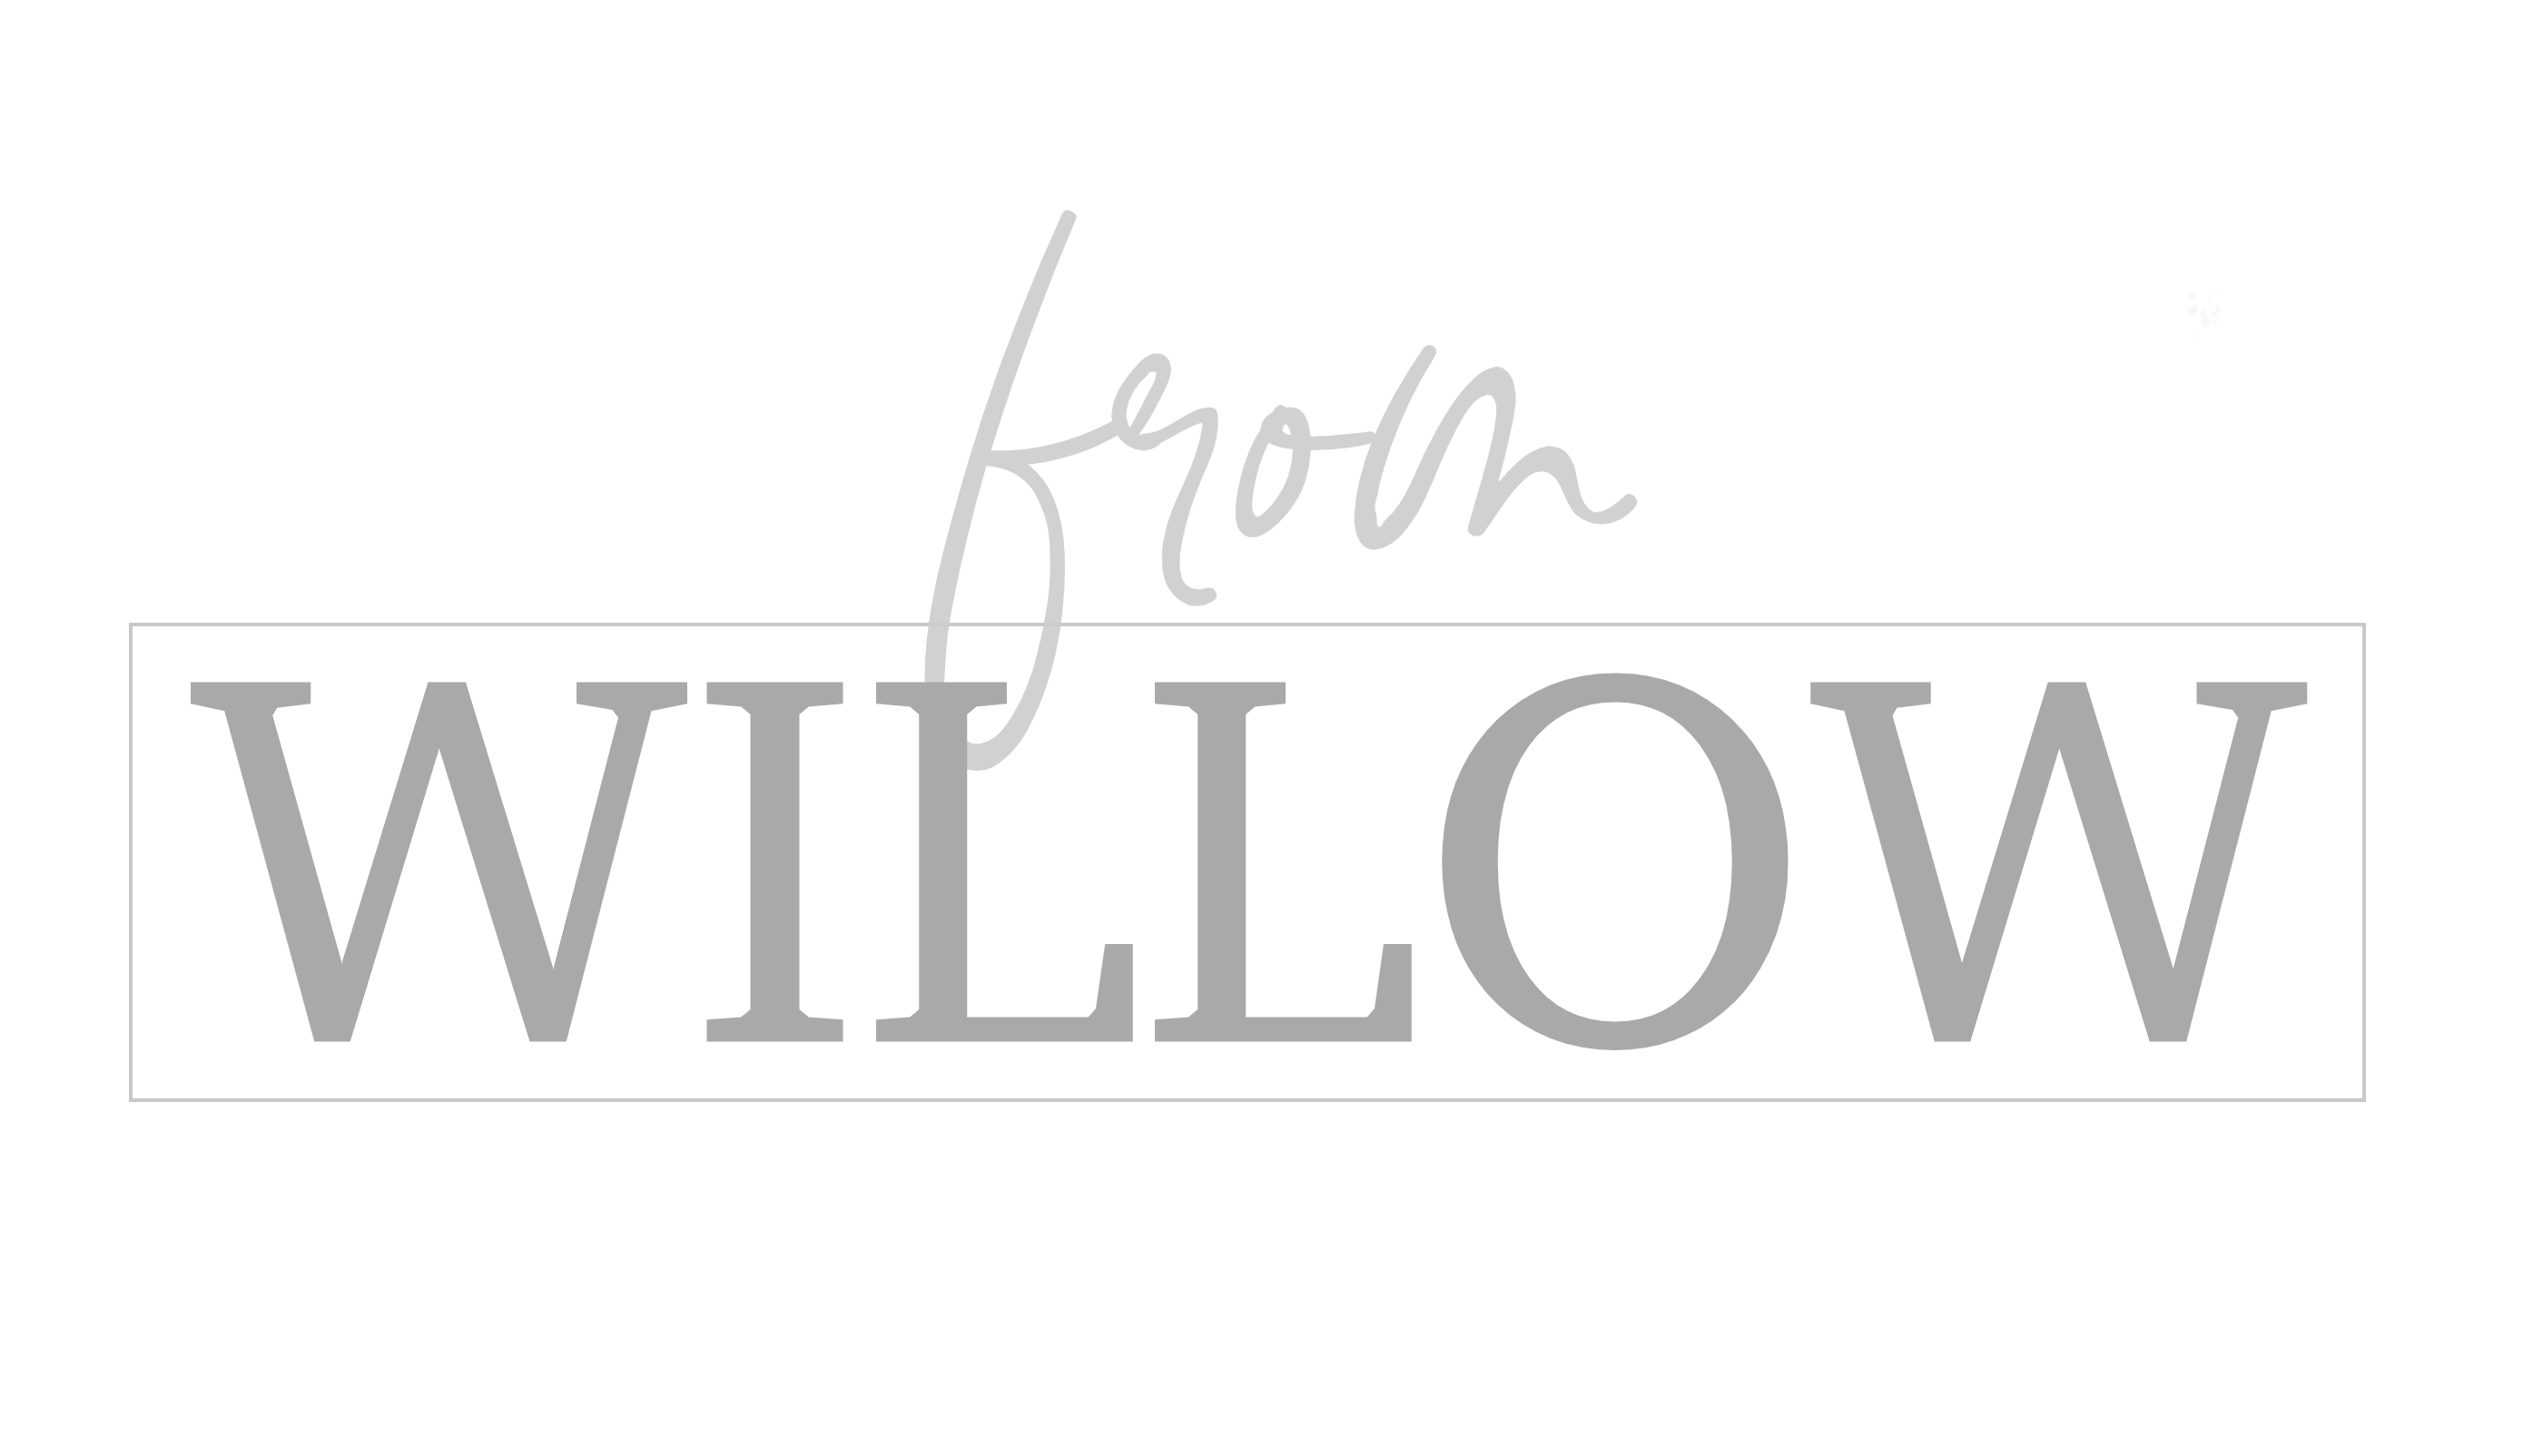 From Willow | Personalised Gifts